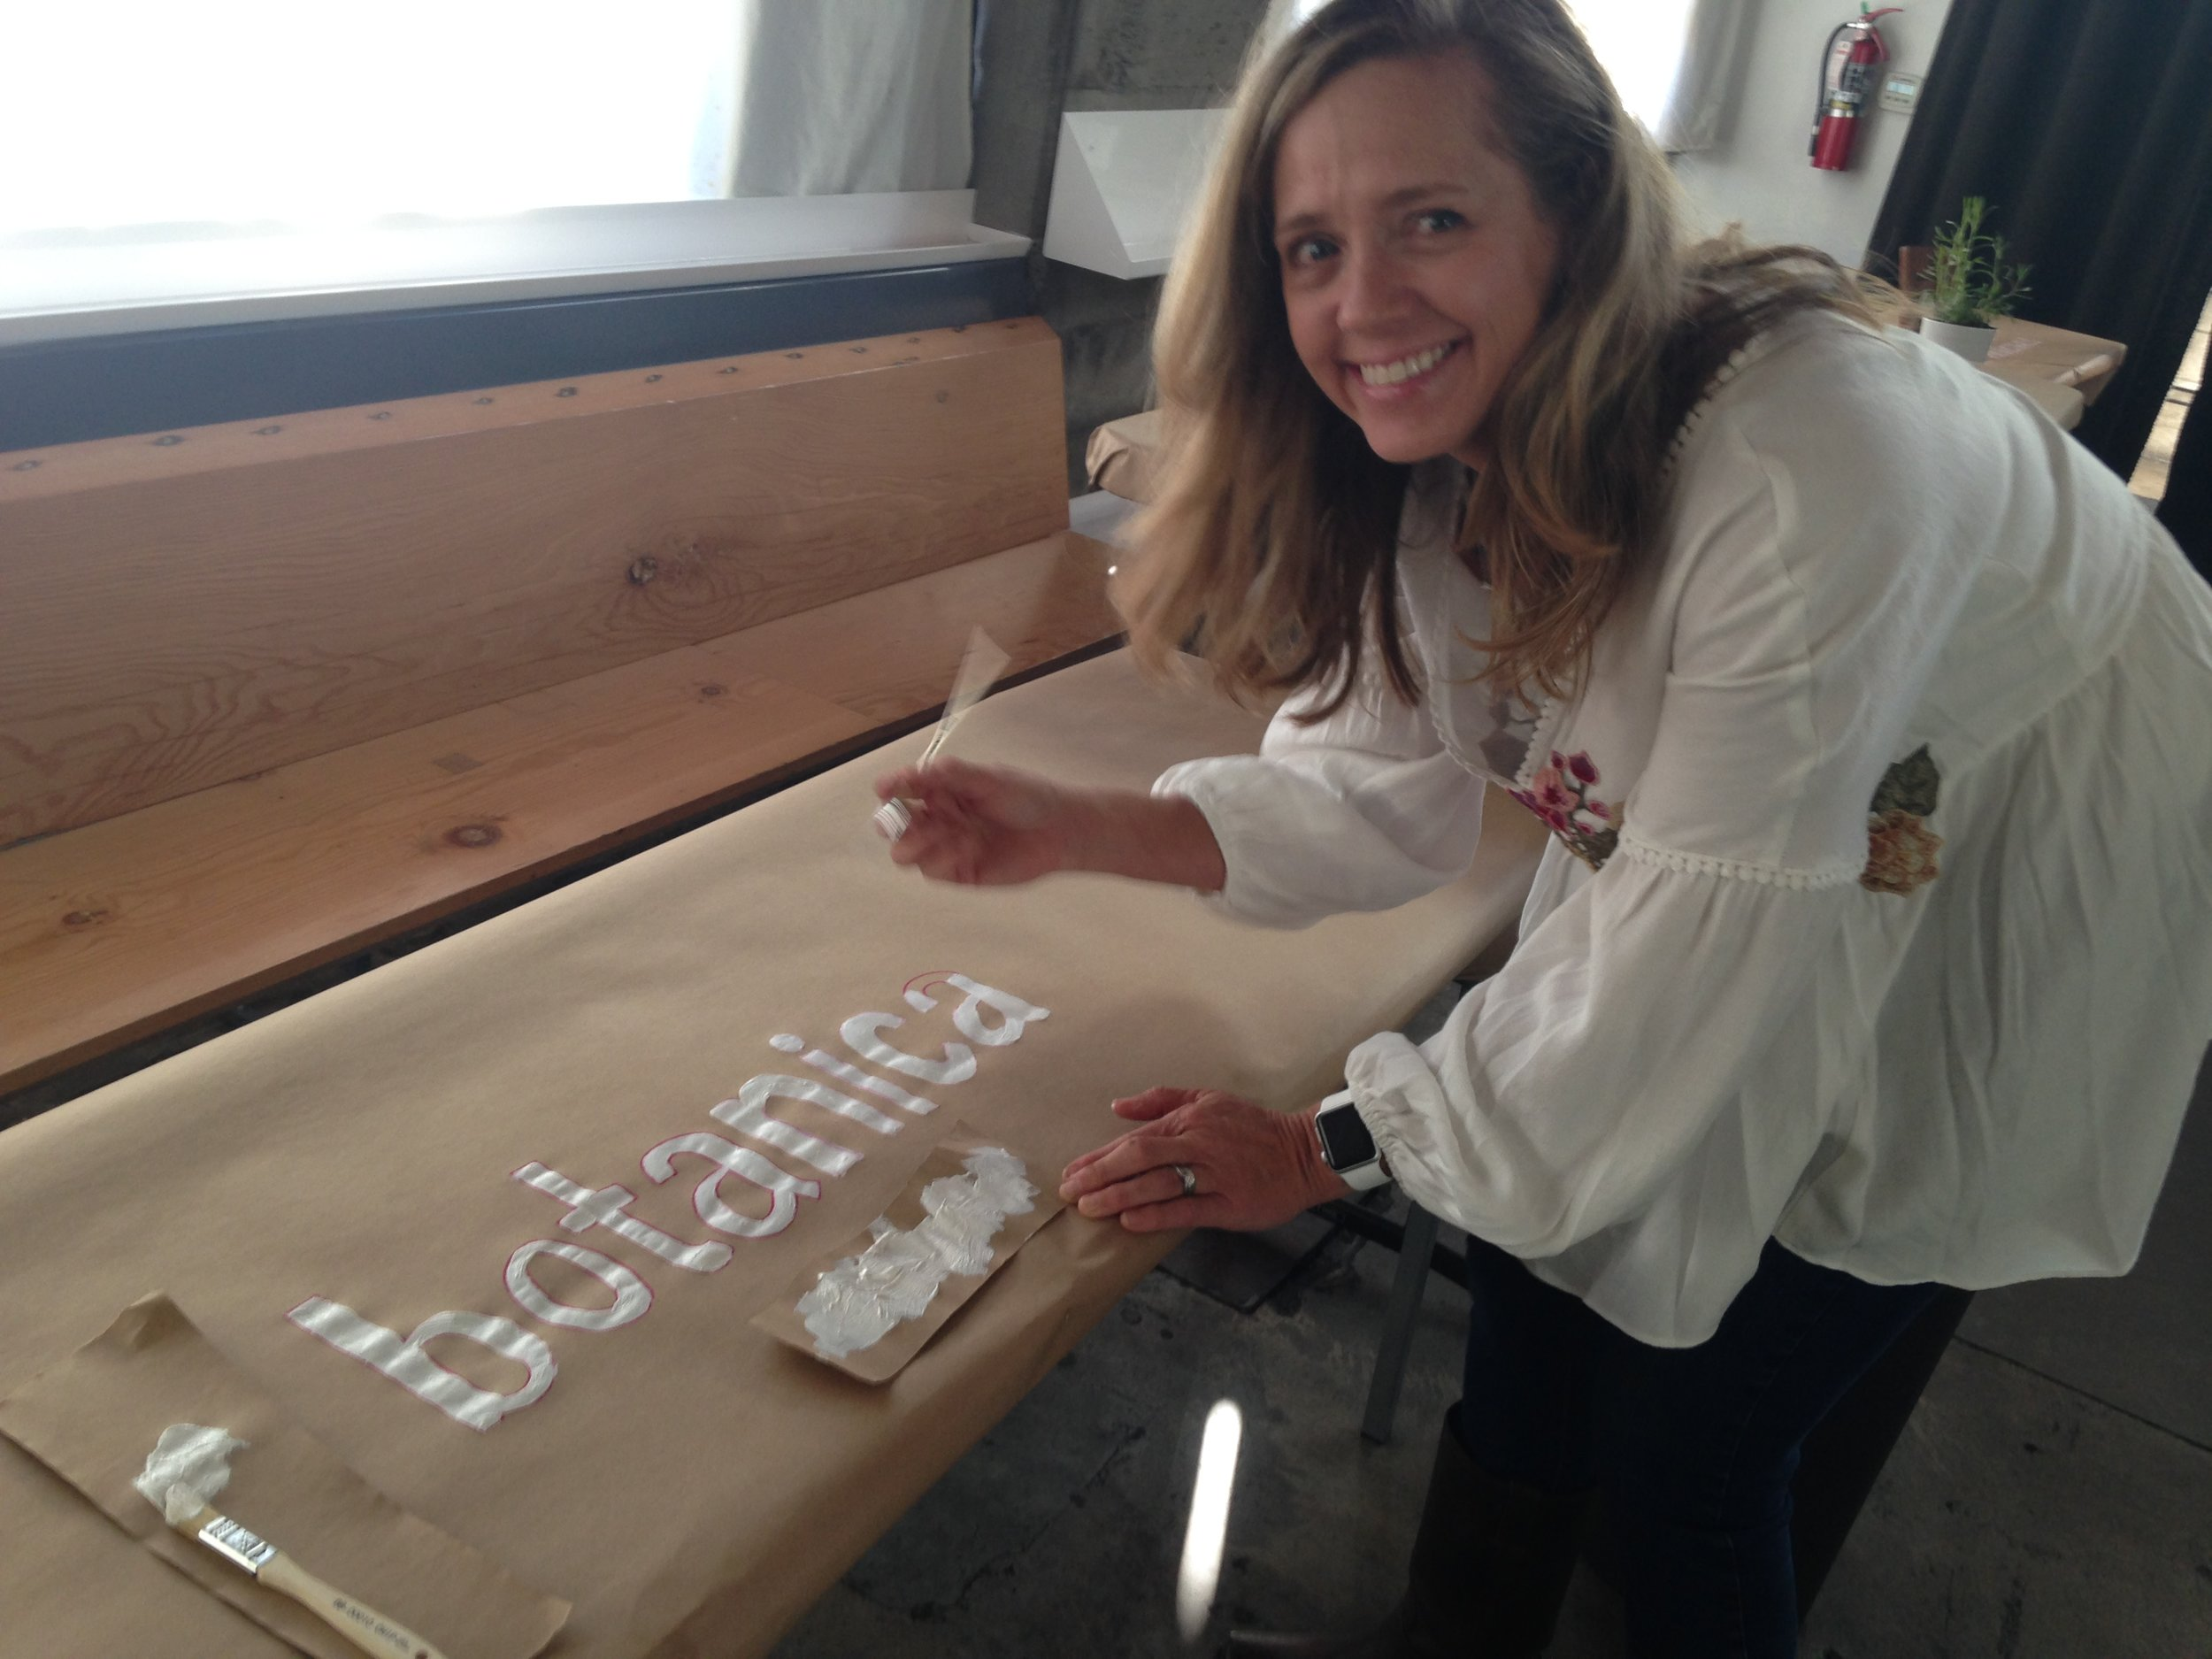 Amy Risch, founder and CEO of  Hana Medicinals , helping Seattle's  Botanica  with their table. Everyone helped everyone. Super sweet and fun party set up at Holocene.